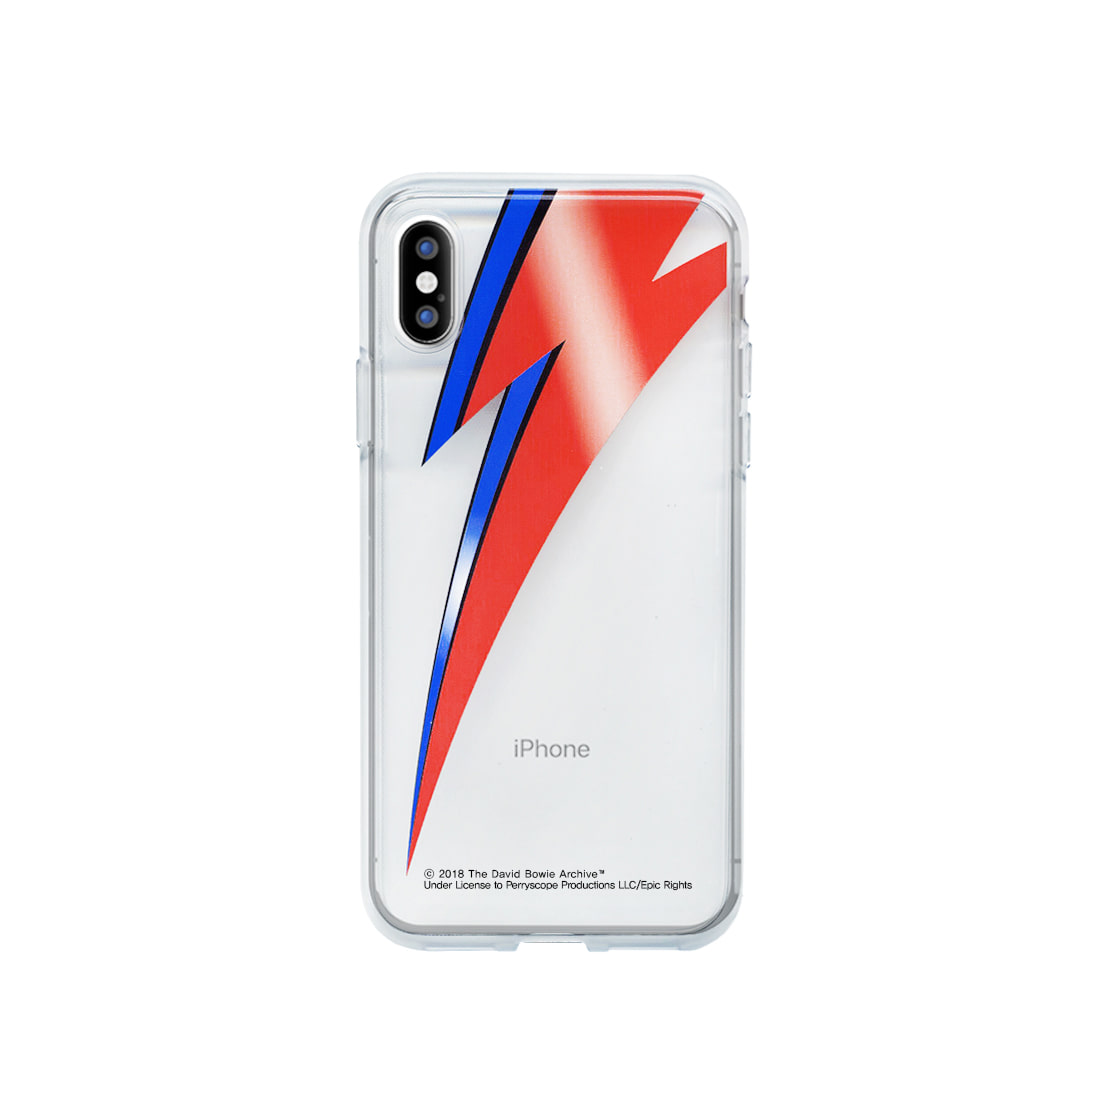 DAVID BOWIE BOLT IPHONE X CLEAR CASE (BRENT197)